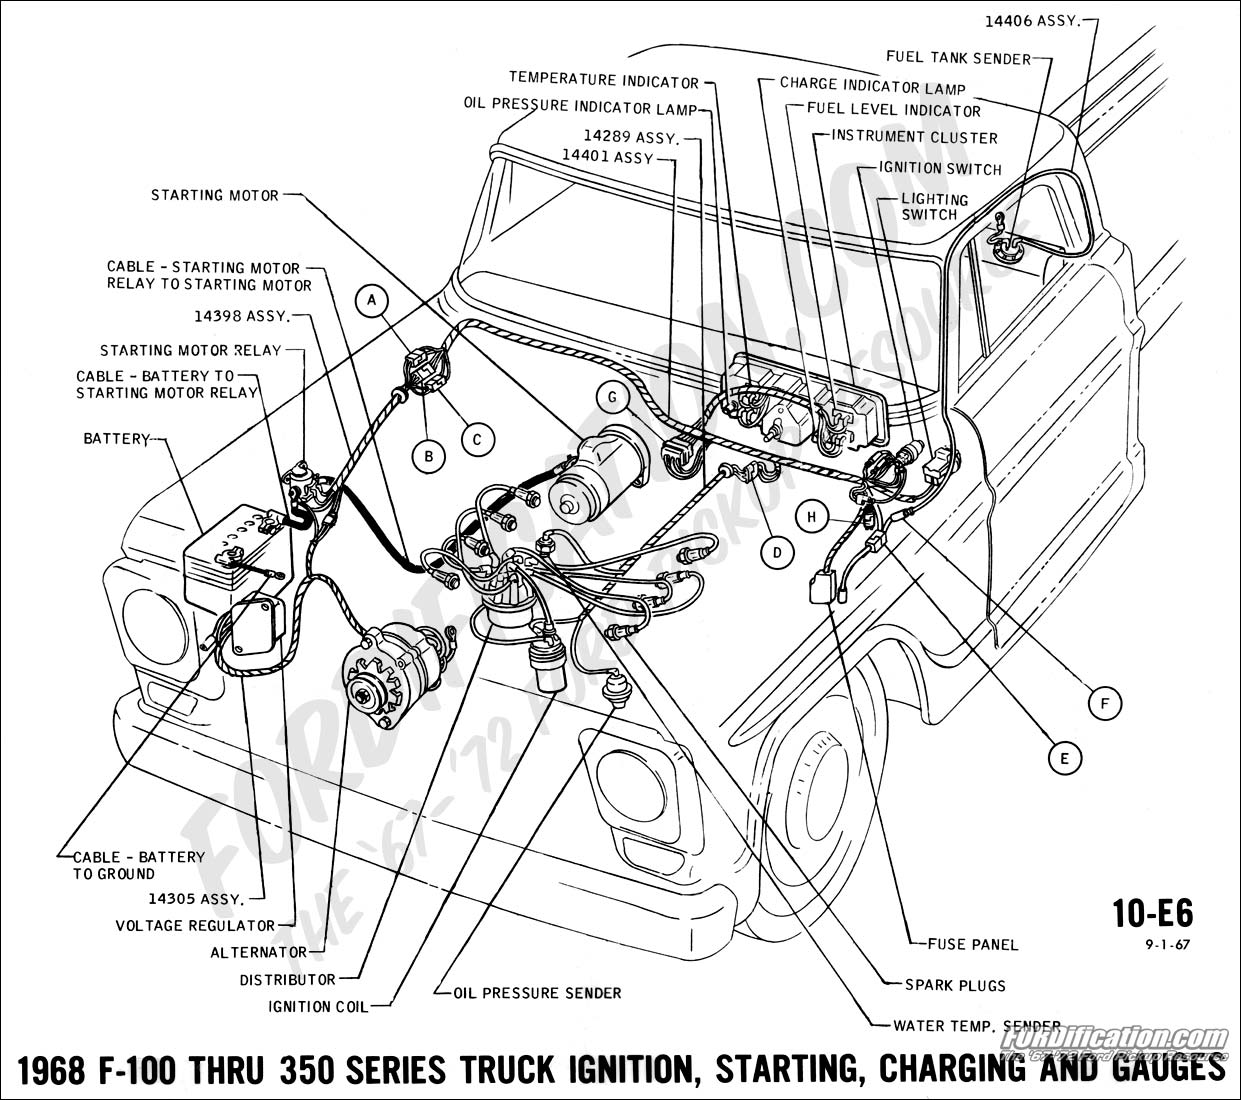 1981 Ford F150 Fuse Box Diagram Great Design Of Wiring 2009 F 150 100 Free Engine Image 2003 F100